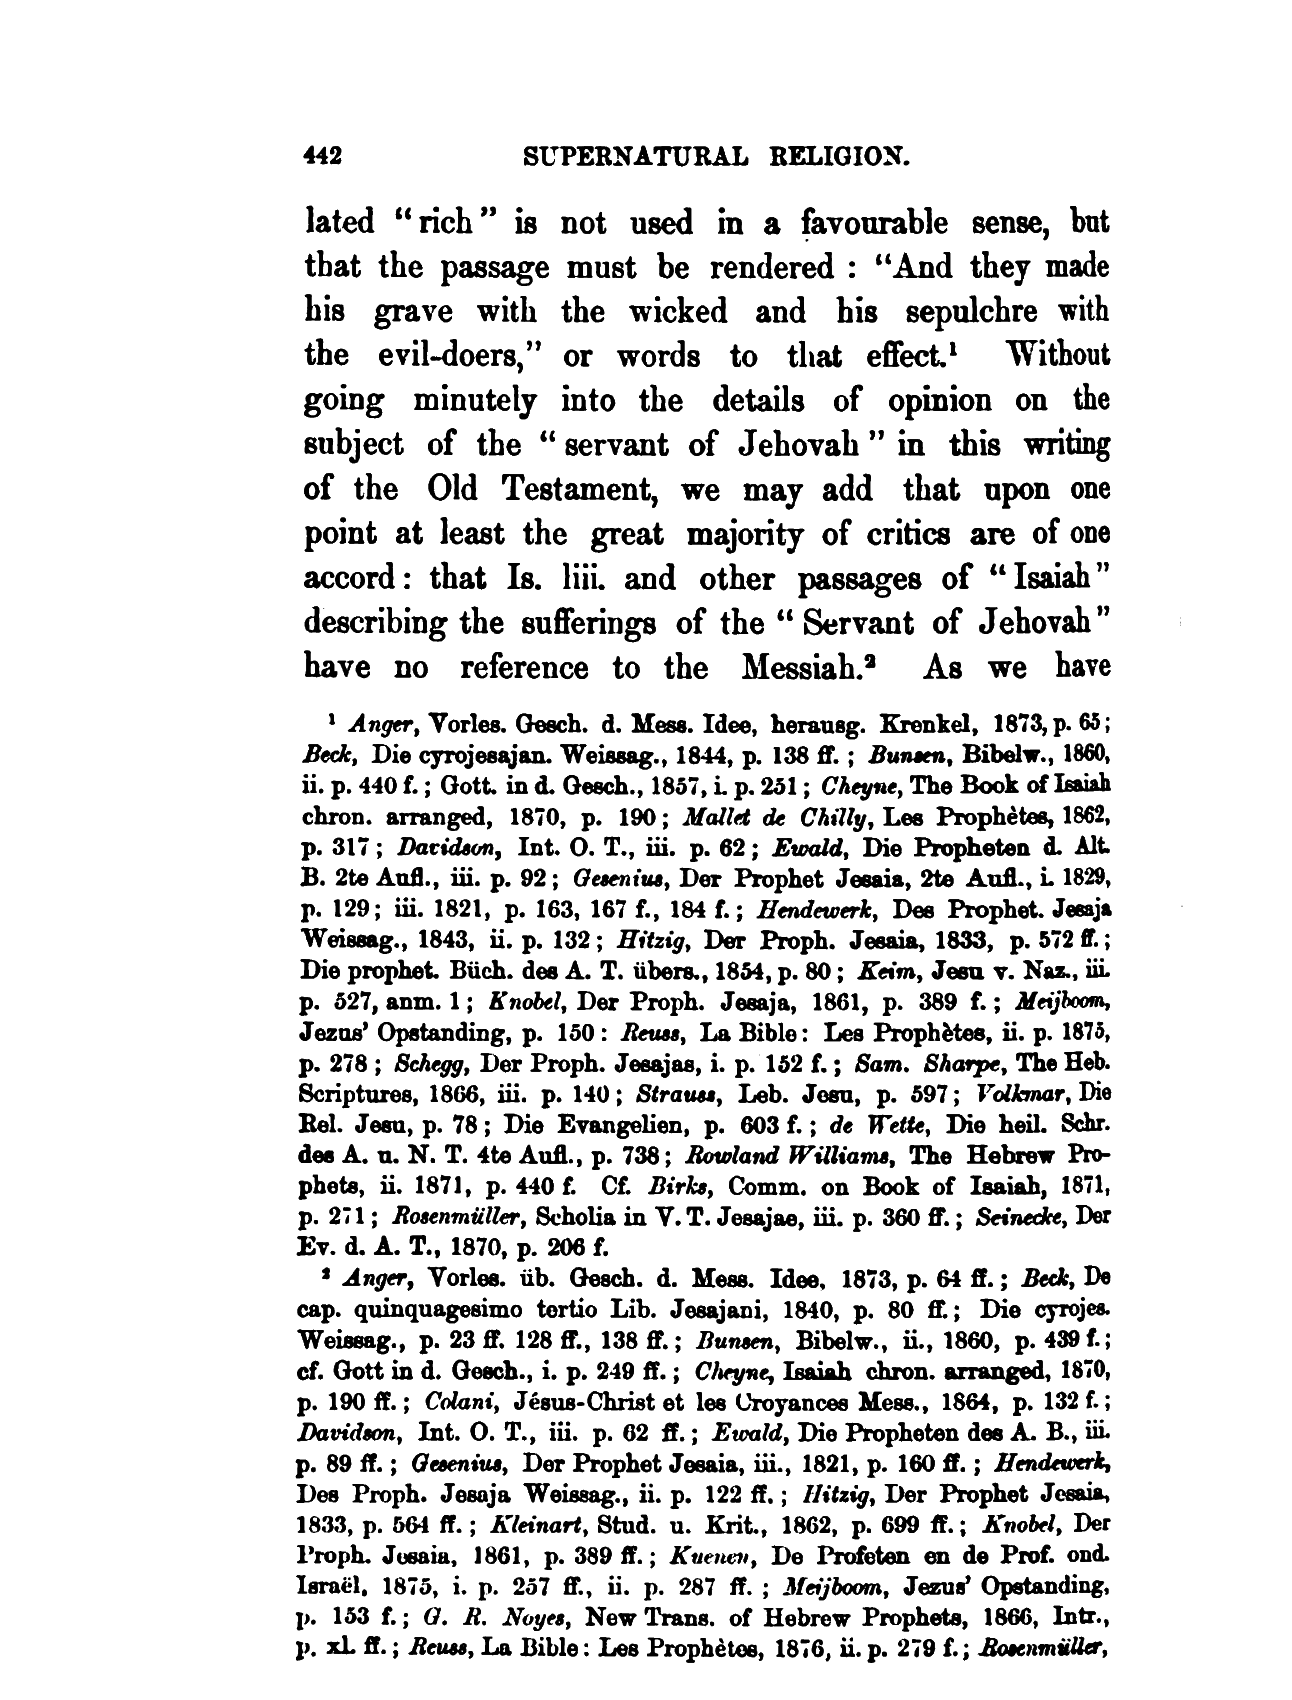 '[442]' from the web at 'http://www.gutenberg.org/files/37233/37233-h/pgimages/442.png'